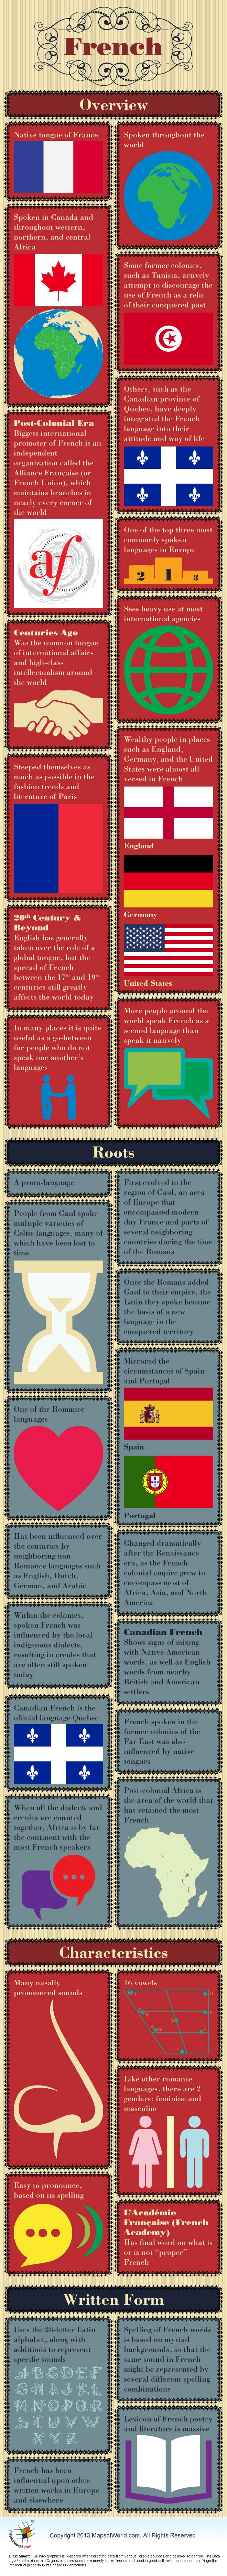 French Language – Facts & Infographic